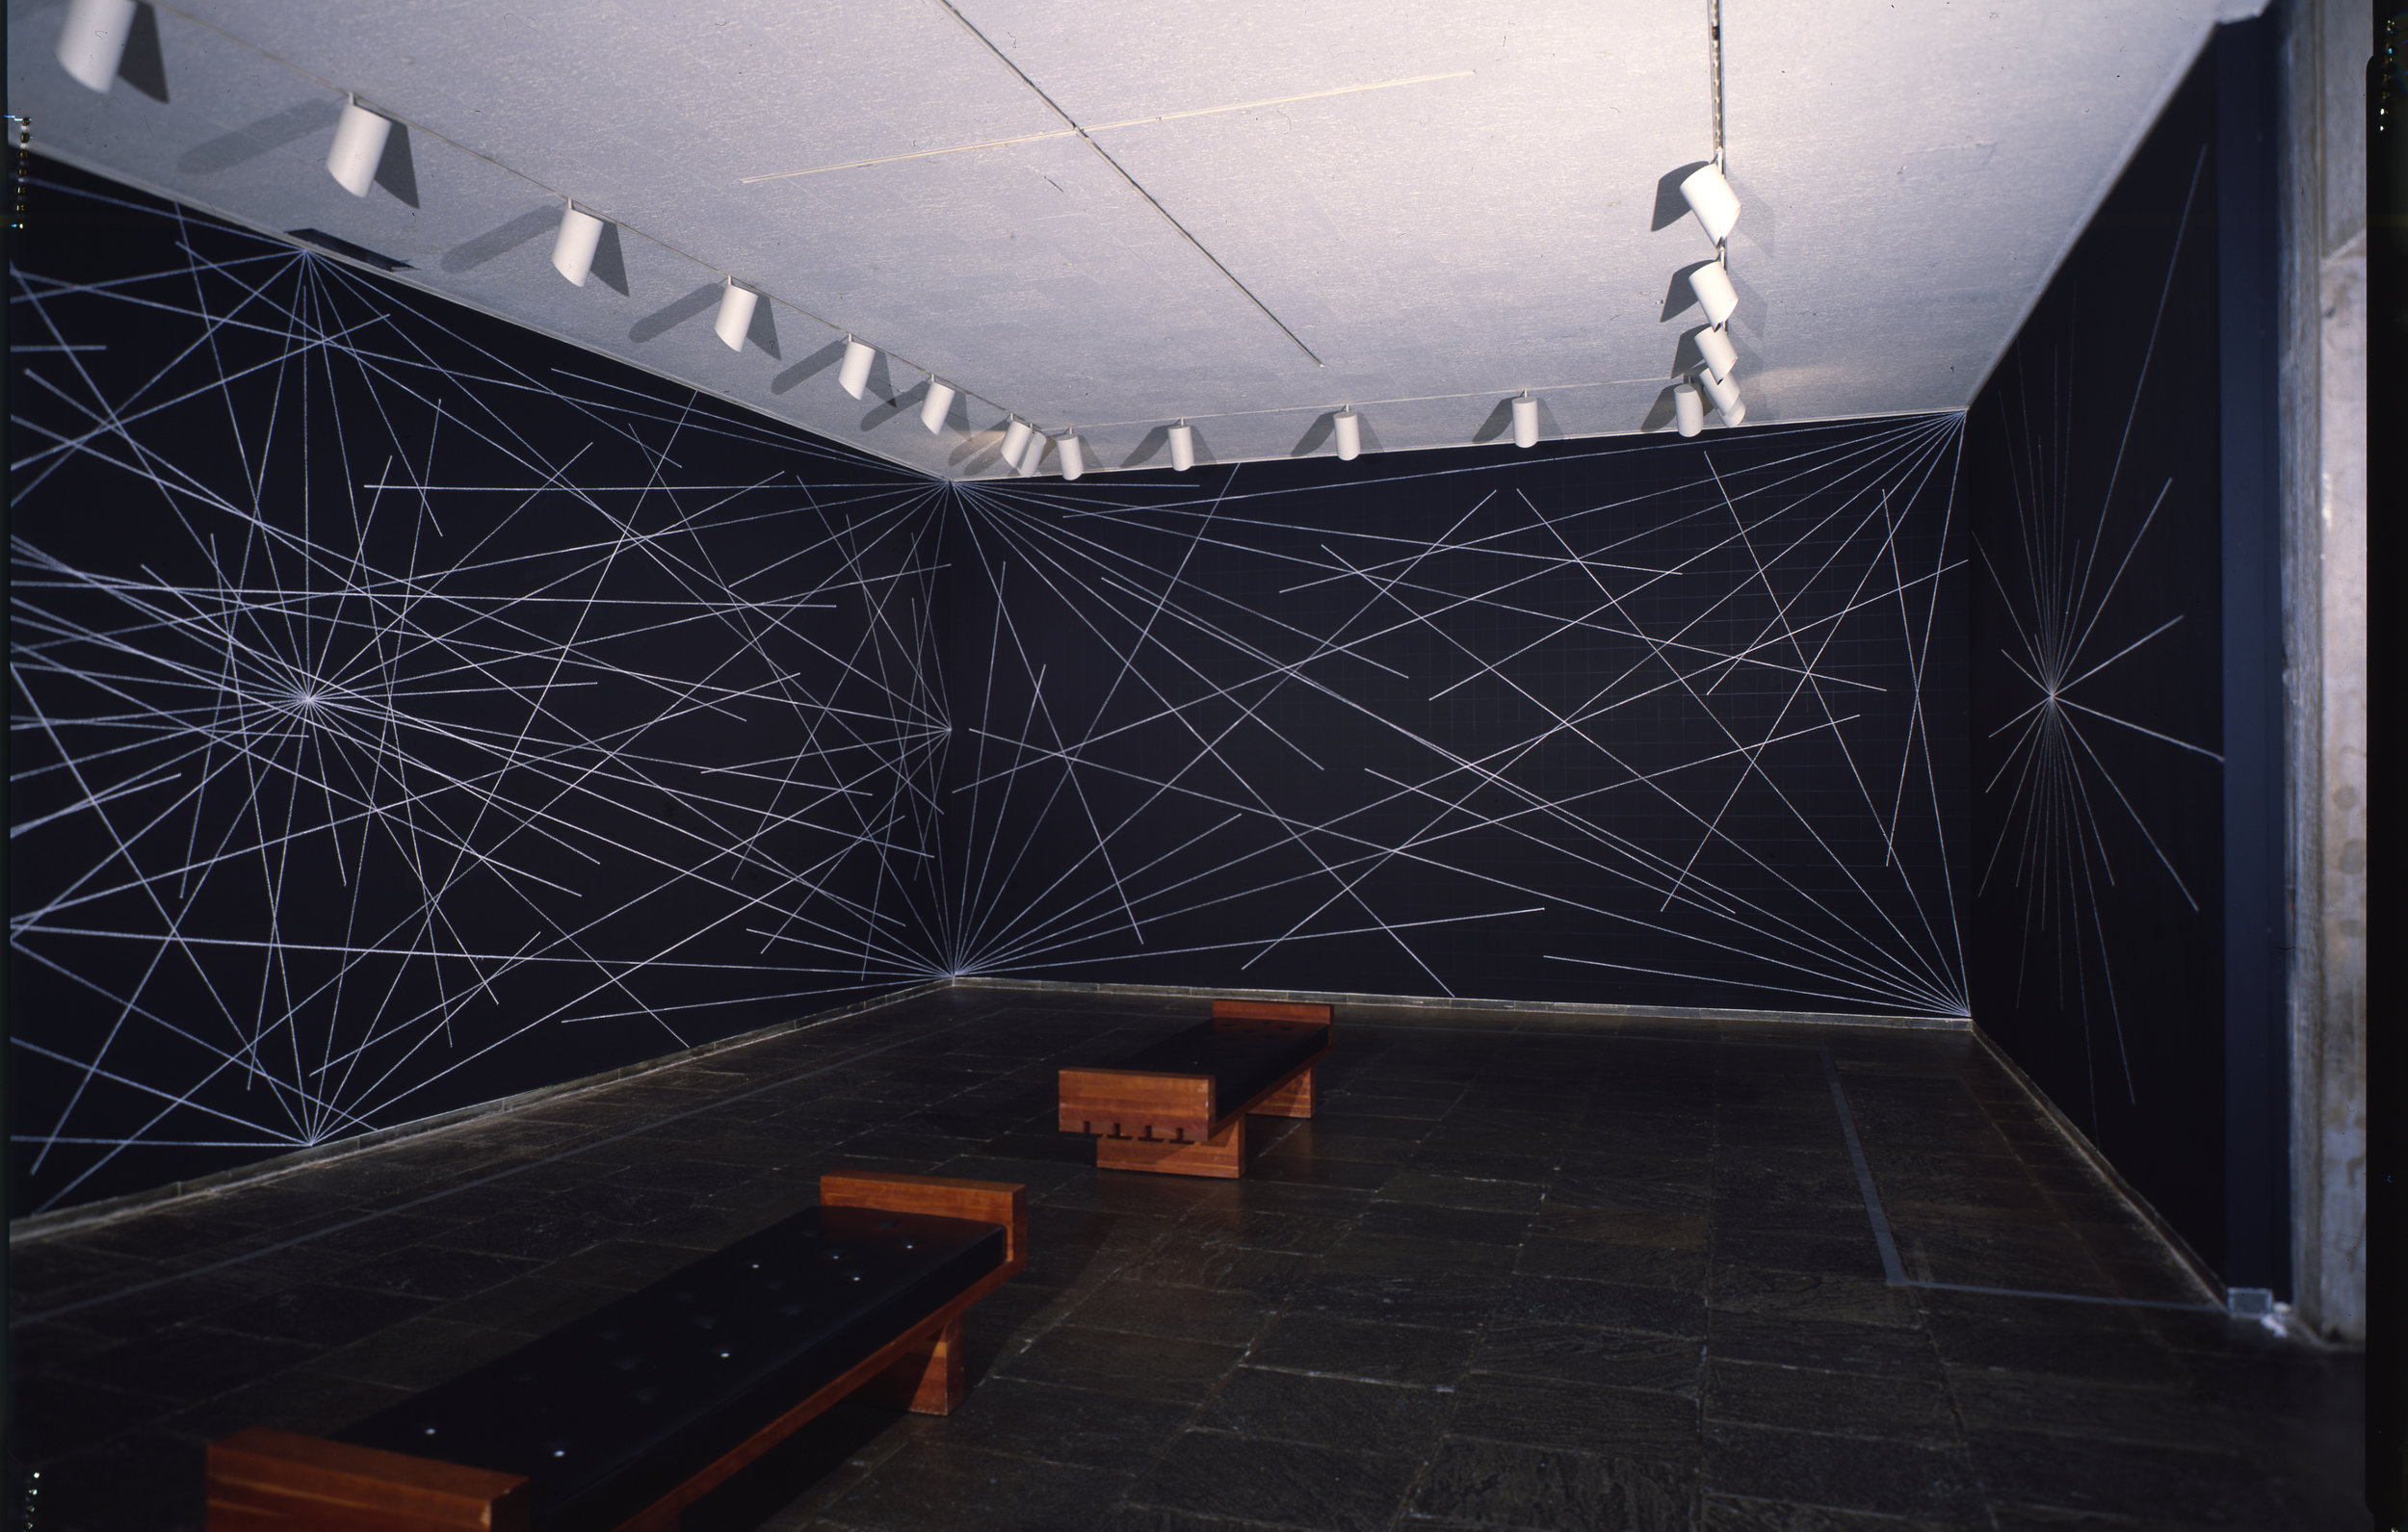 Sol LeWitt (1928-2007),  Wall Drawing #289 , 1976. Wax crayon, graphite pencil, and paint on four walls, dimensions variable. Whitney Museum of American Art, New York; purchase with funds from the Gilman Foundation, Inc. 78.1.1-4. © 2018 Sol LeWitt/Artists Rights Society (ARS), New York